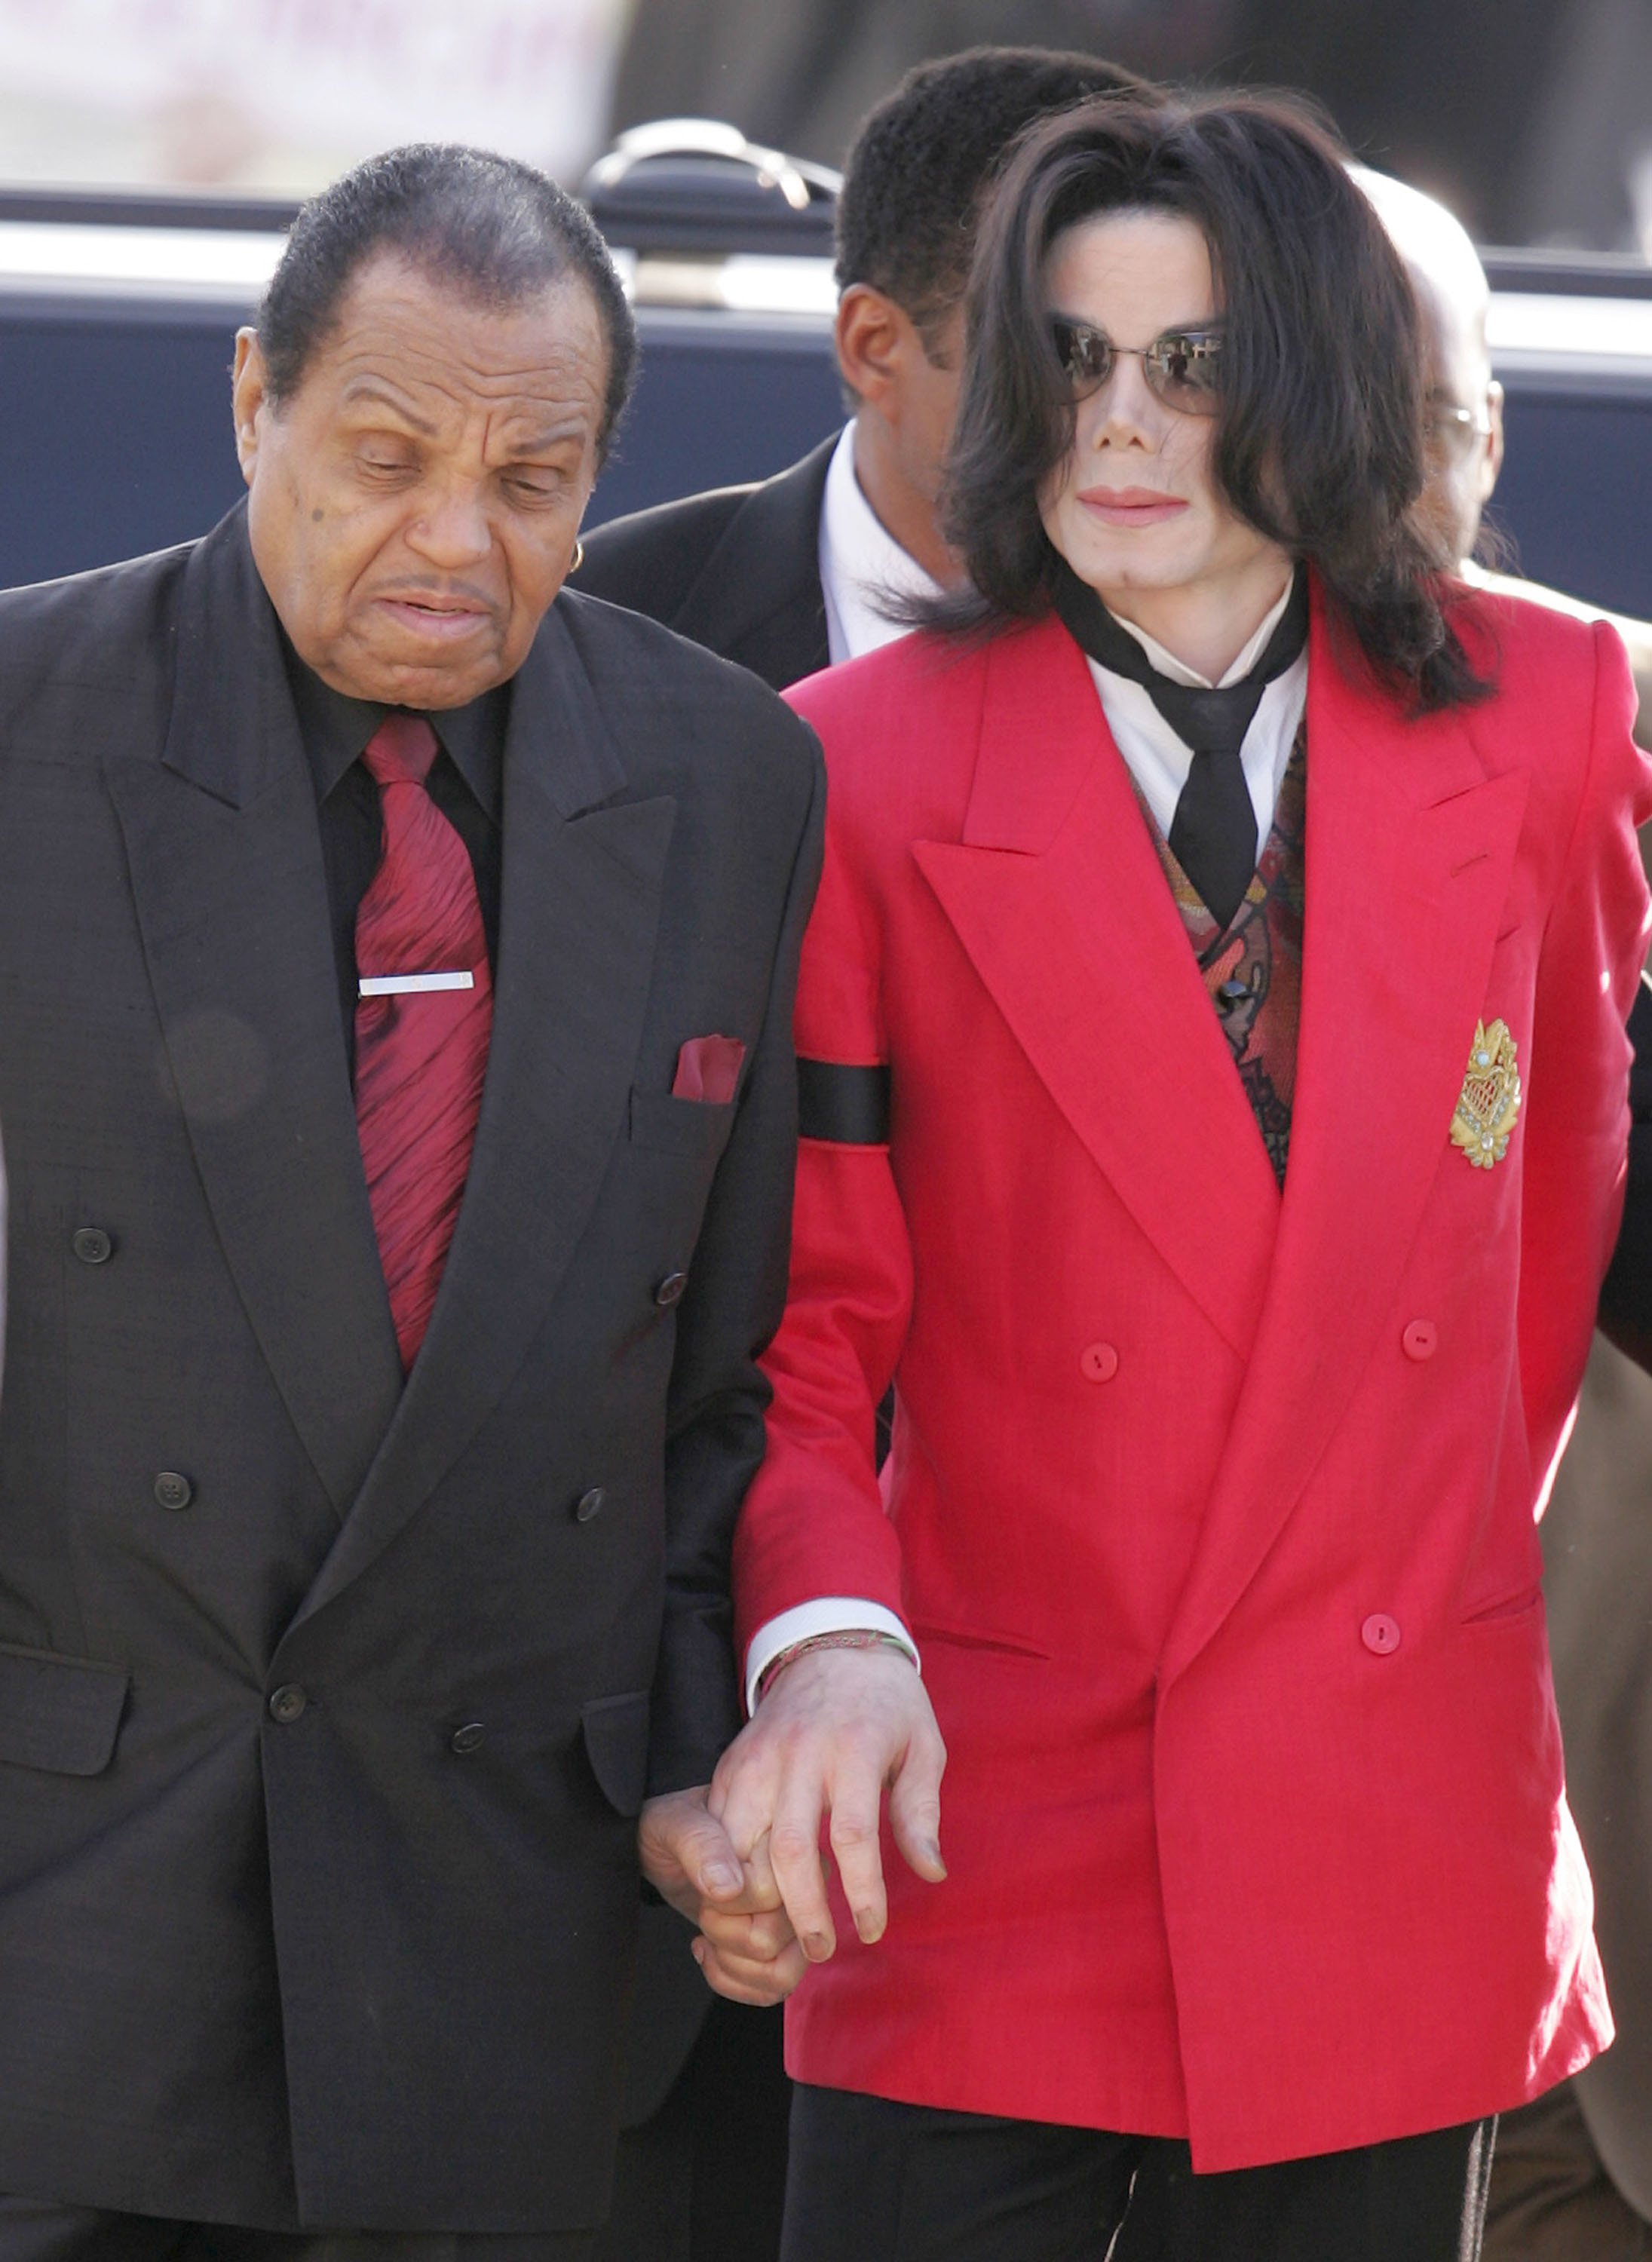 Joseph Jackson with son Michael Jackson at the Santa Barbara County Courthouse during the 2005 child molestation trial | Source: Getty Images